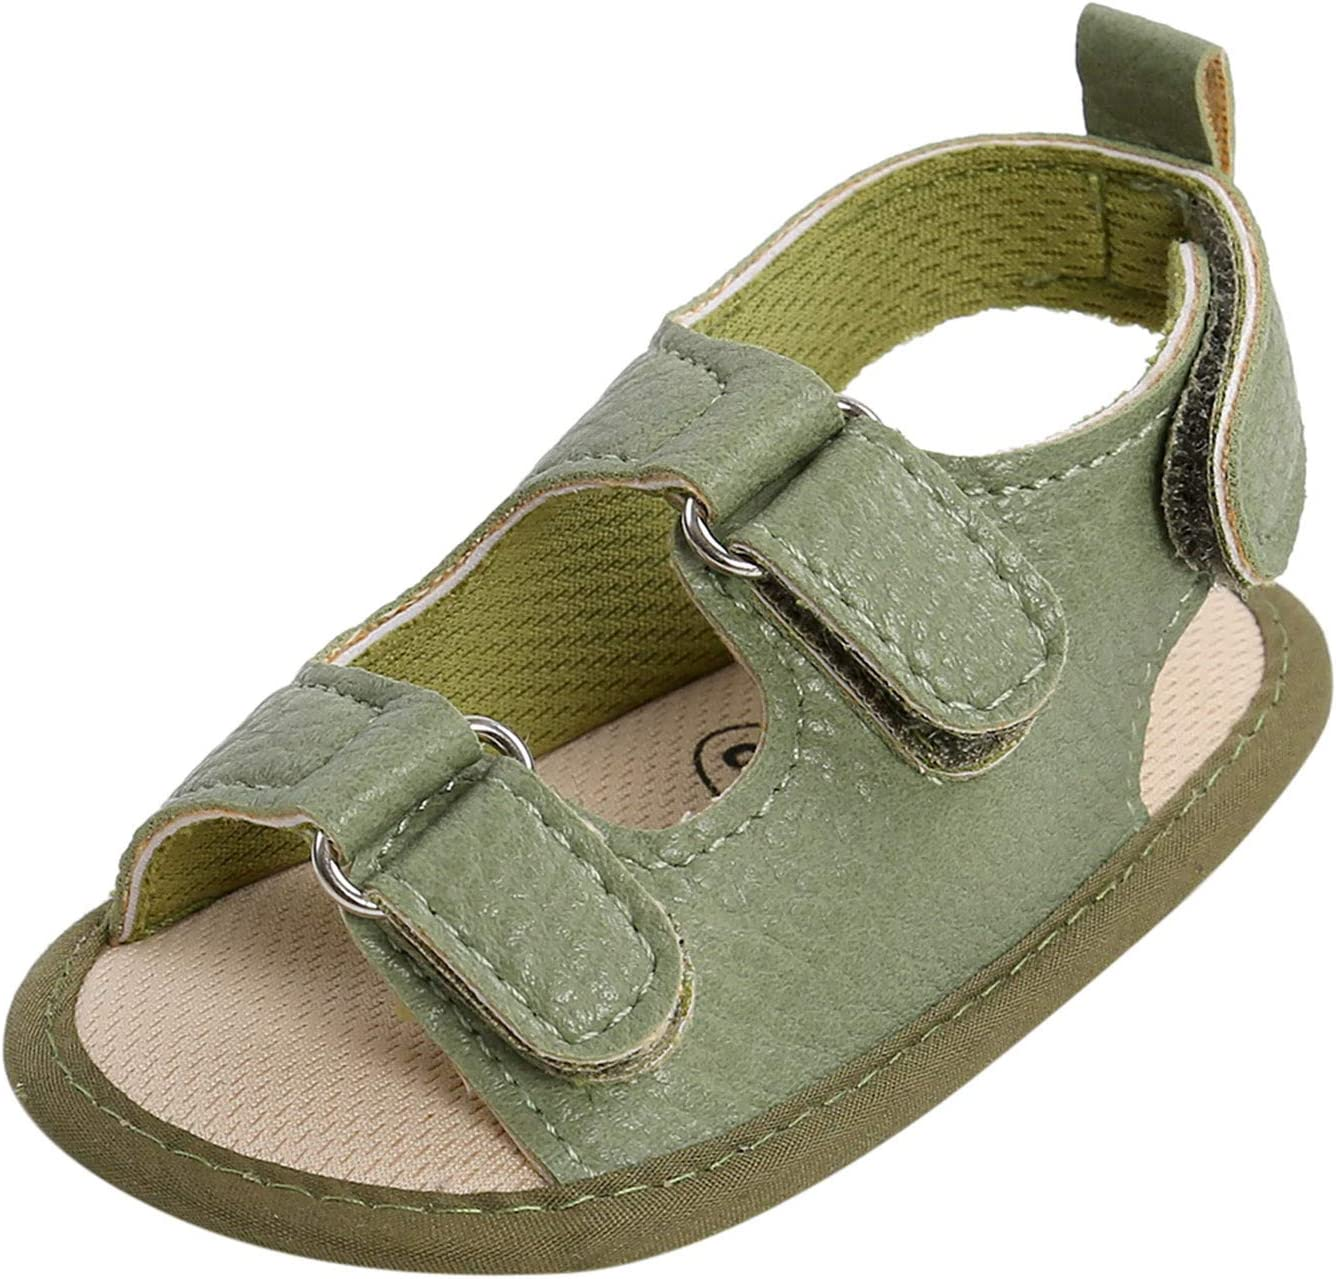 0-18M Spasm price Baby Gifts Boys Girls Sandals Non-Slip Sole Soft Rubber Casual